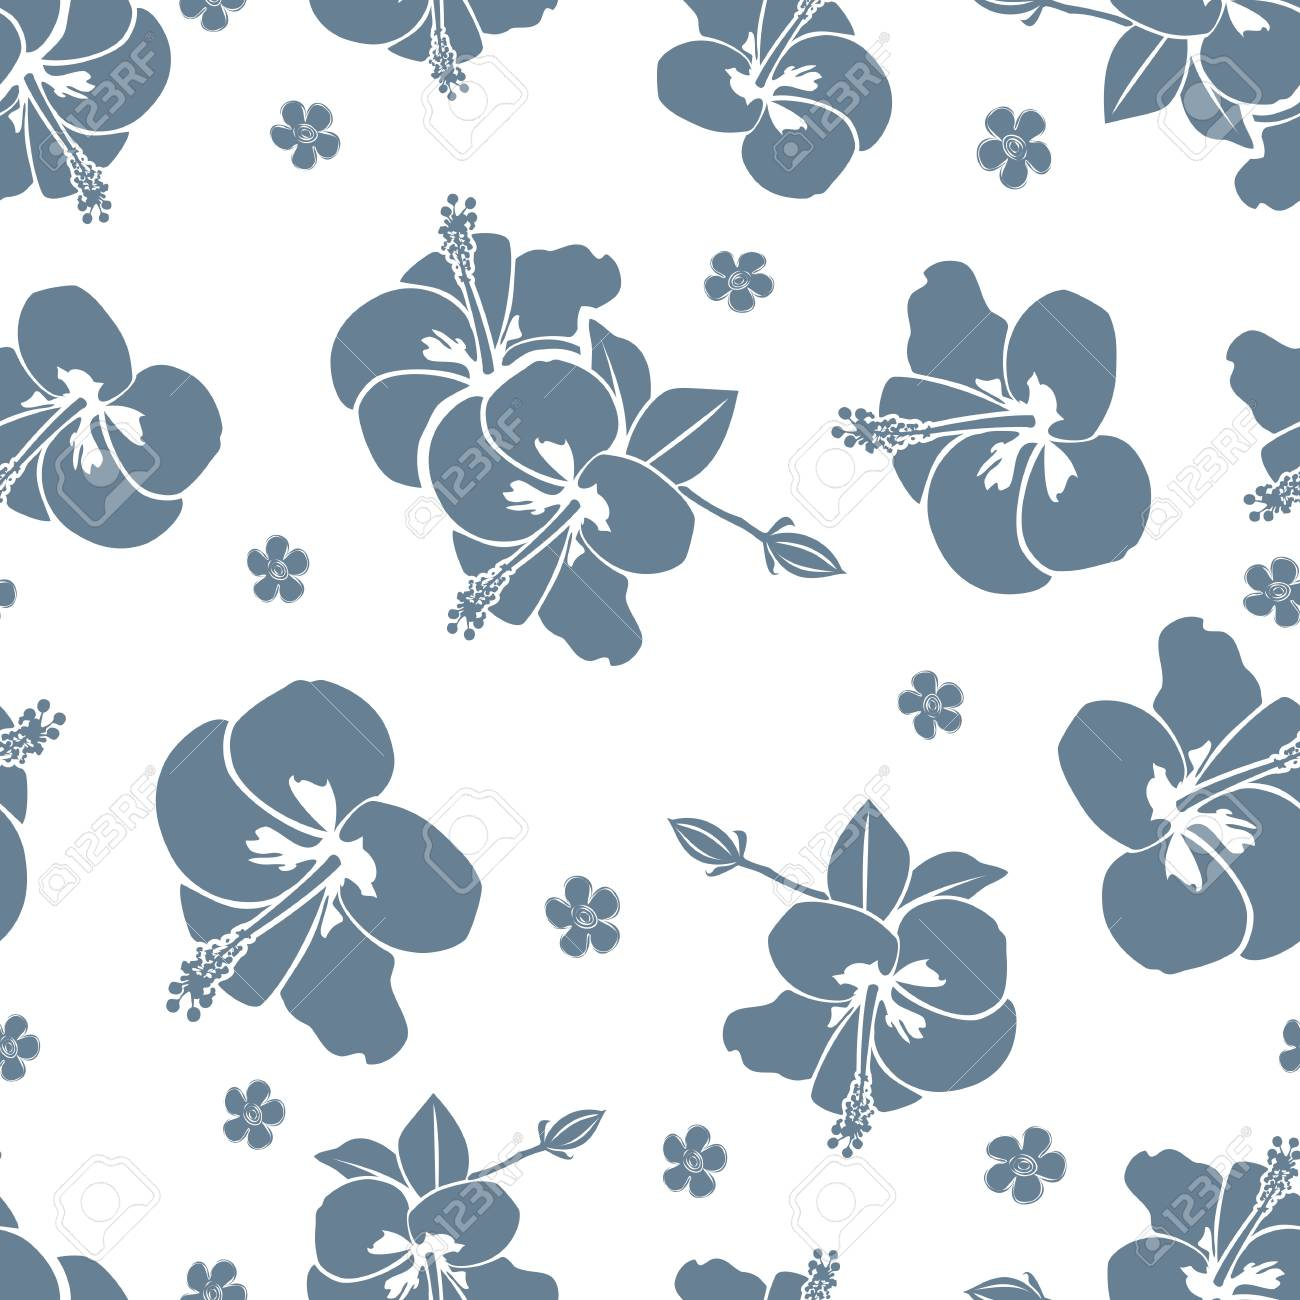 Seamless pattern of blue hibiscus flowers on white background seamless pattern of blue hibiscus flowers on white background stock vector 75830423 izmirmasajfo